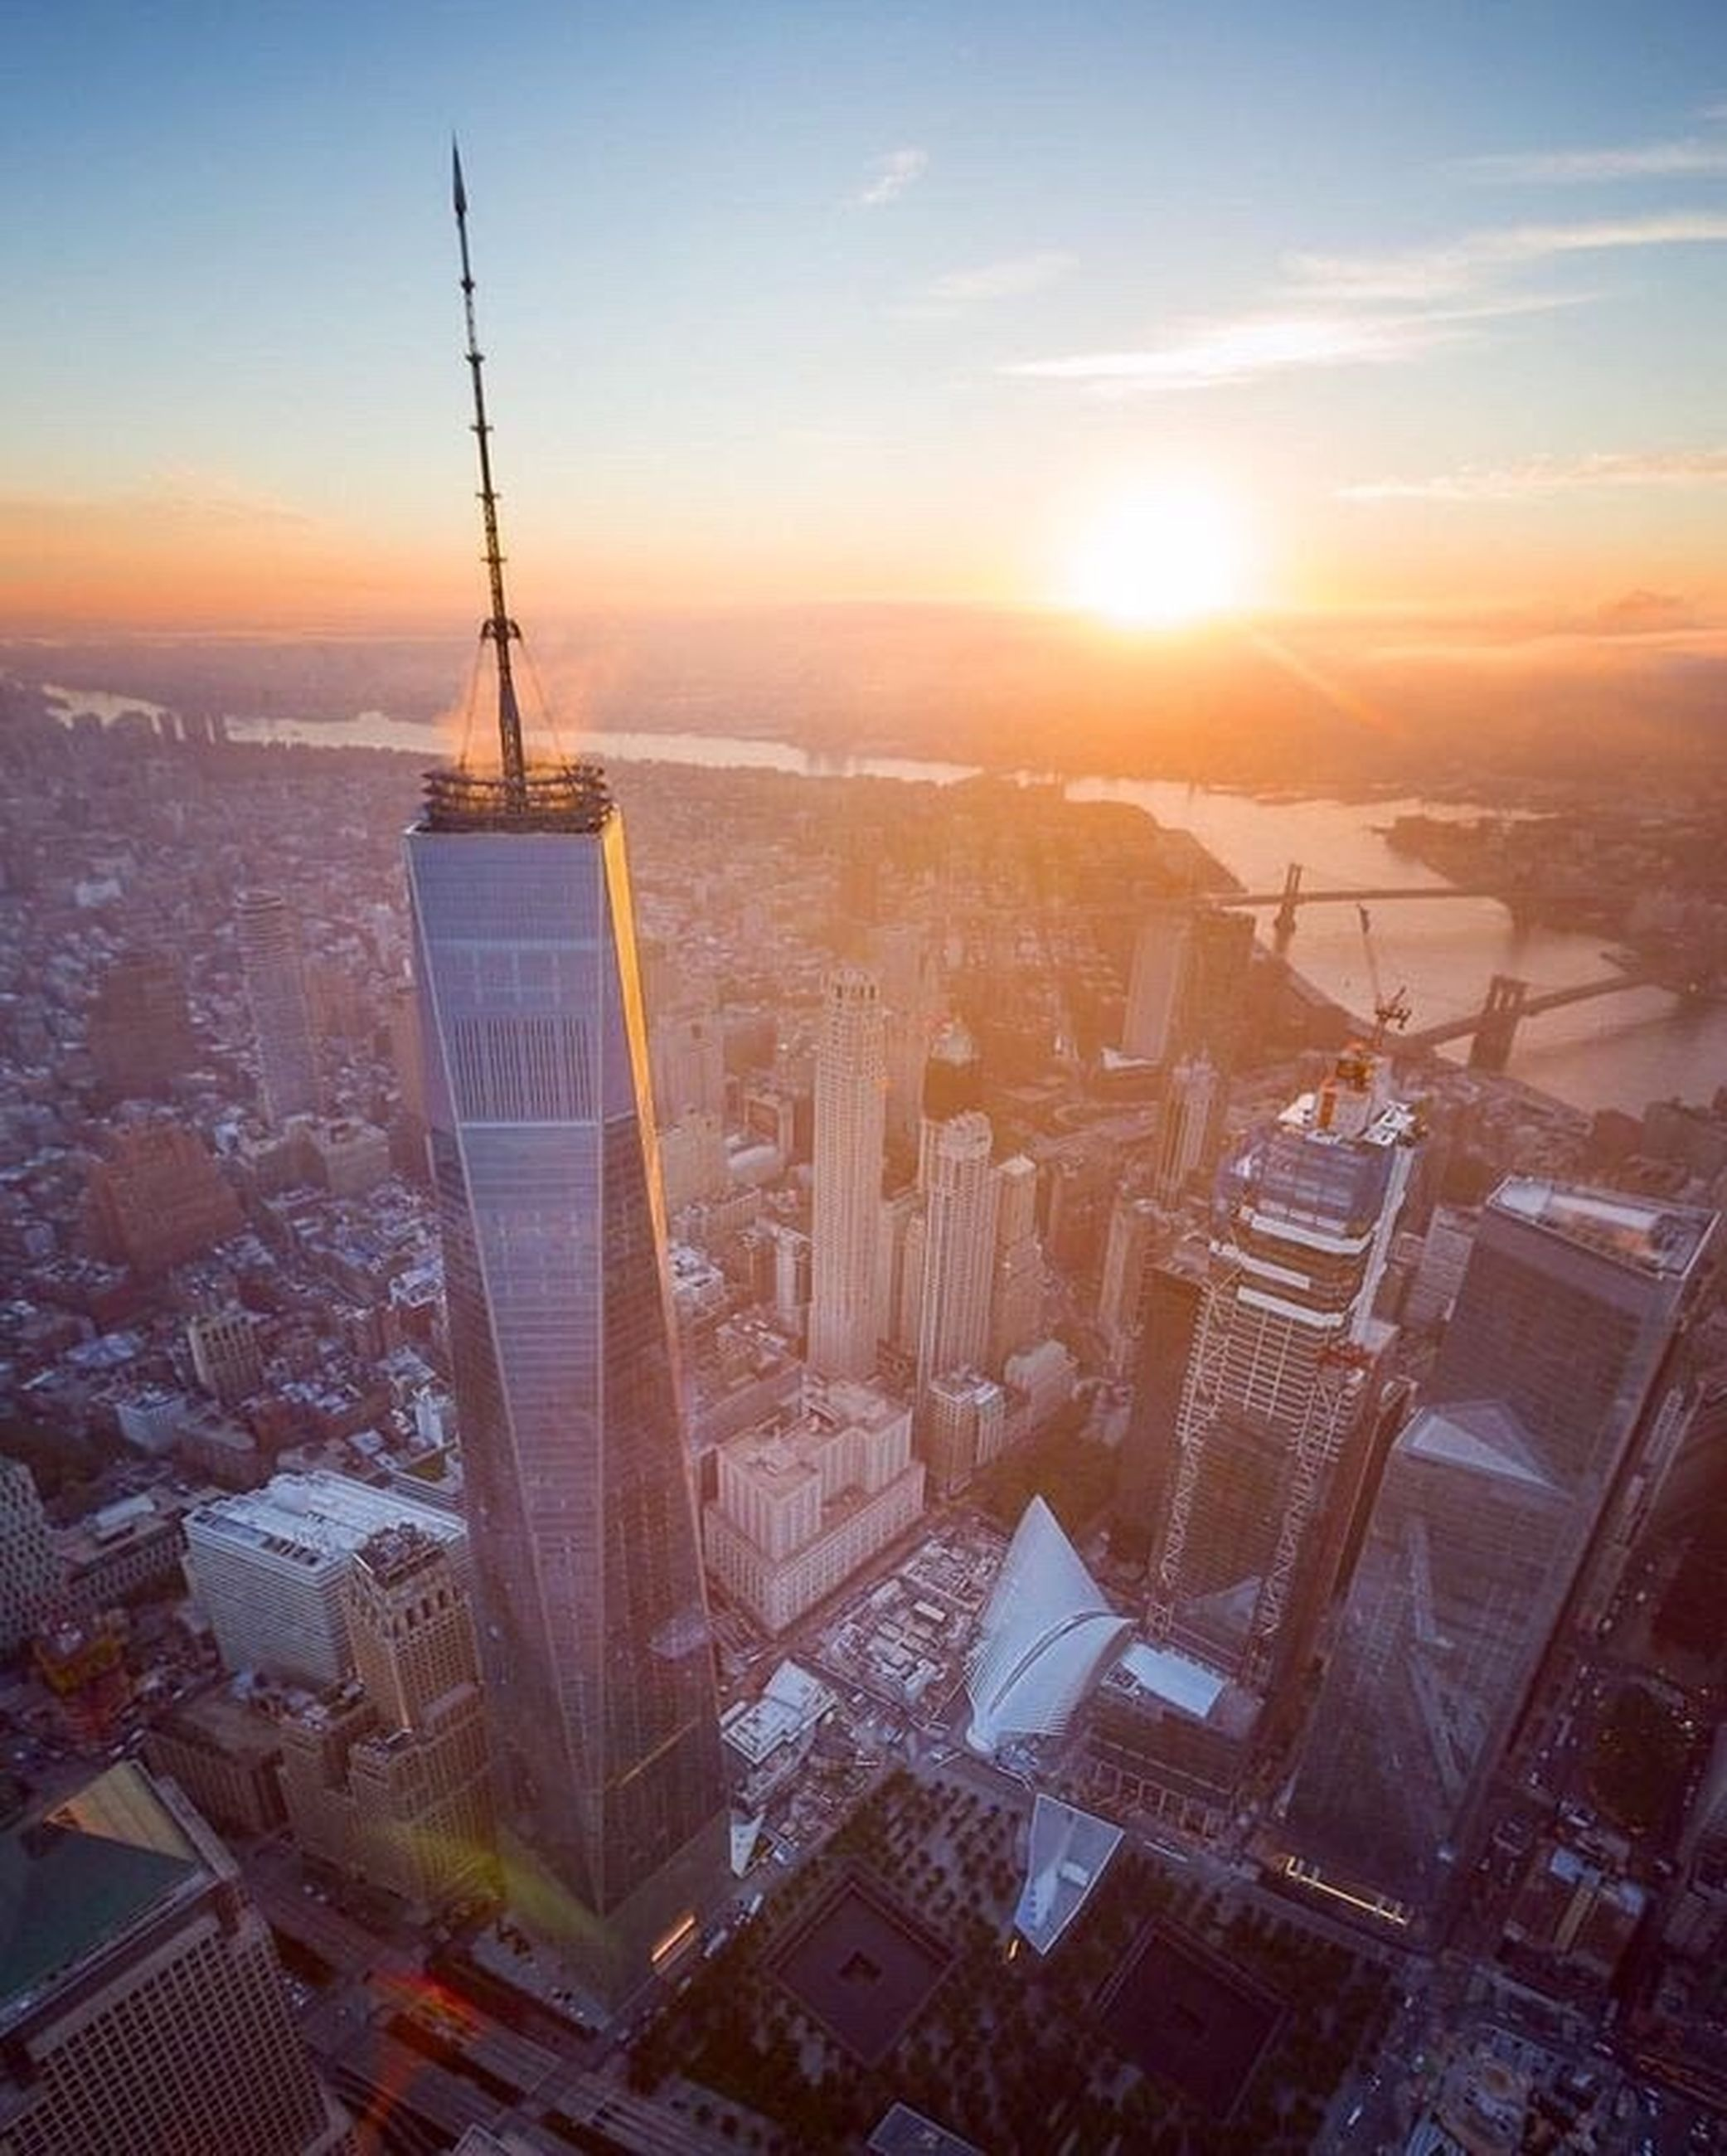 cityscape, skyscraper, city, architecture, building exterior, tower, sunset, development, urban skyline, aerial view, travel destinations, no people, sun, city life, built structure, corporate business, outdoors, modern, sky, day